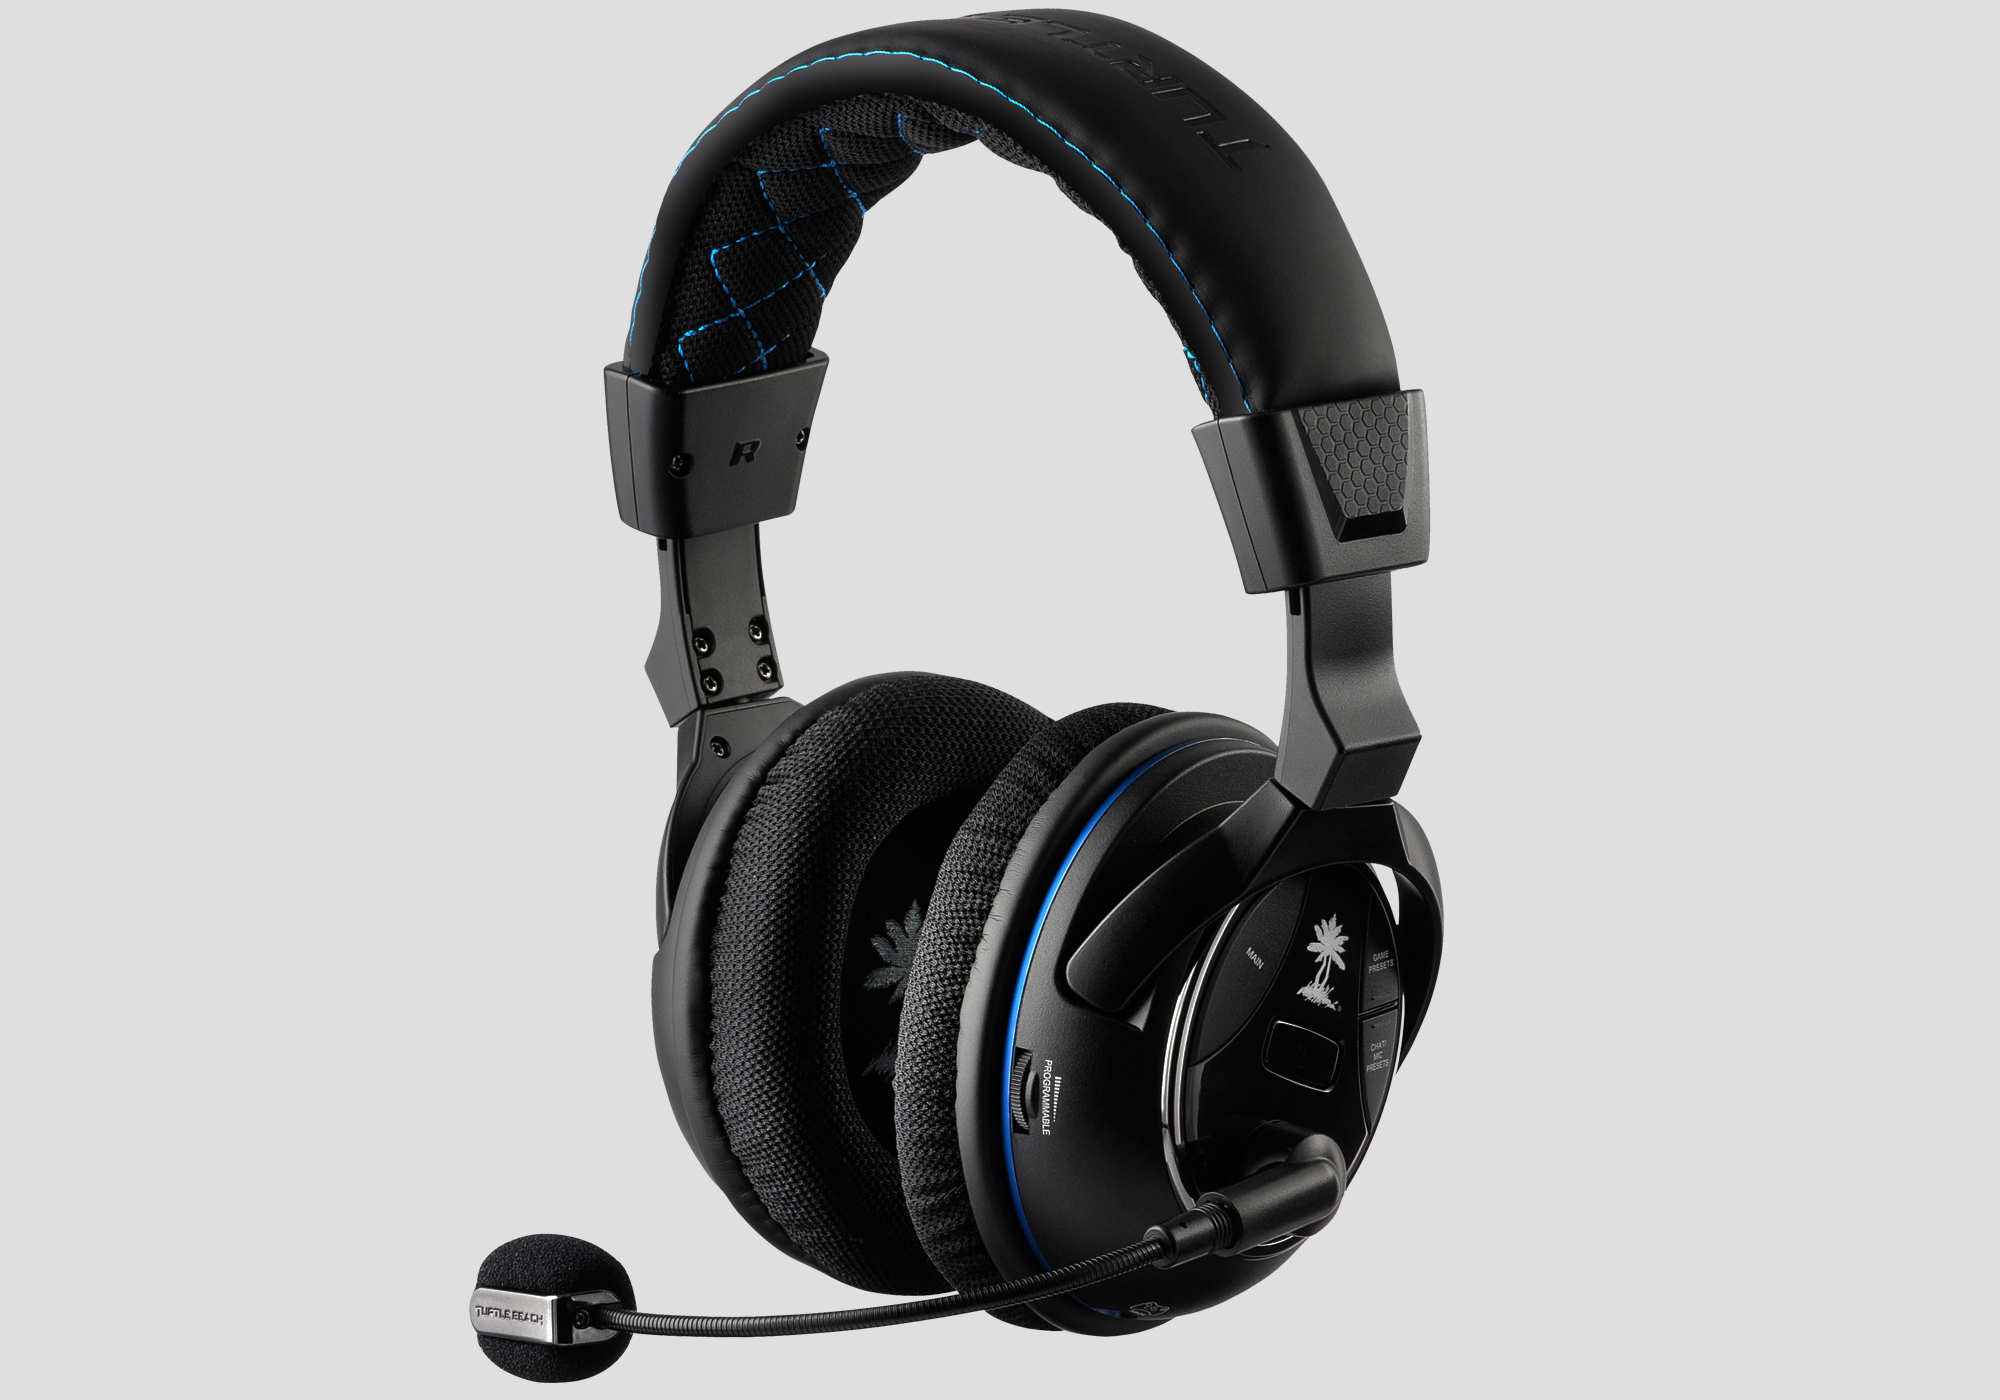 casque turtle beach ear force px4 ps4 xbox one ps3 xbox 360 mobiles page 1 gamalive. Black Bedroom Furniture Sets. Home Design Ideas